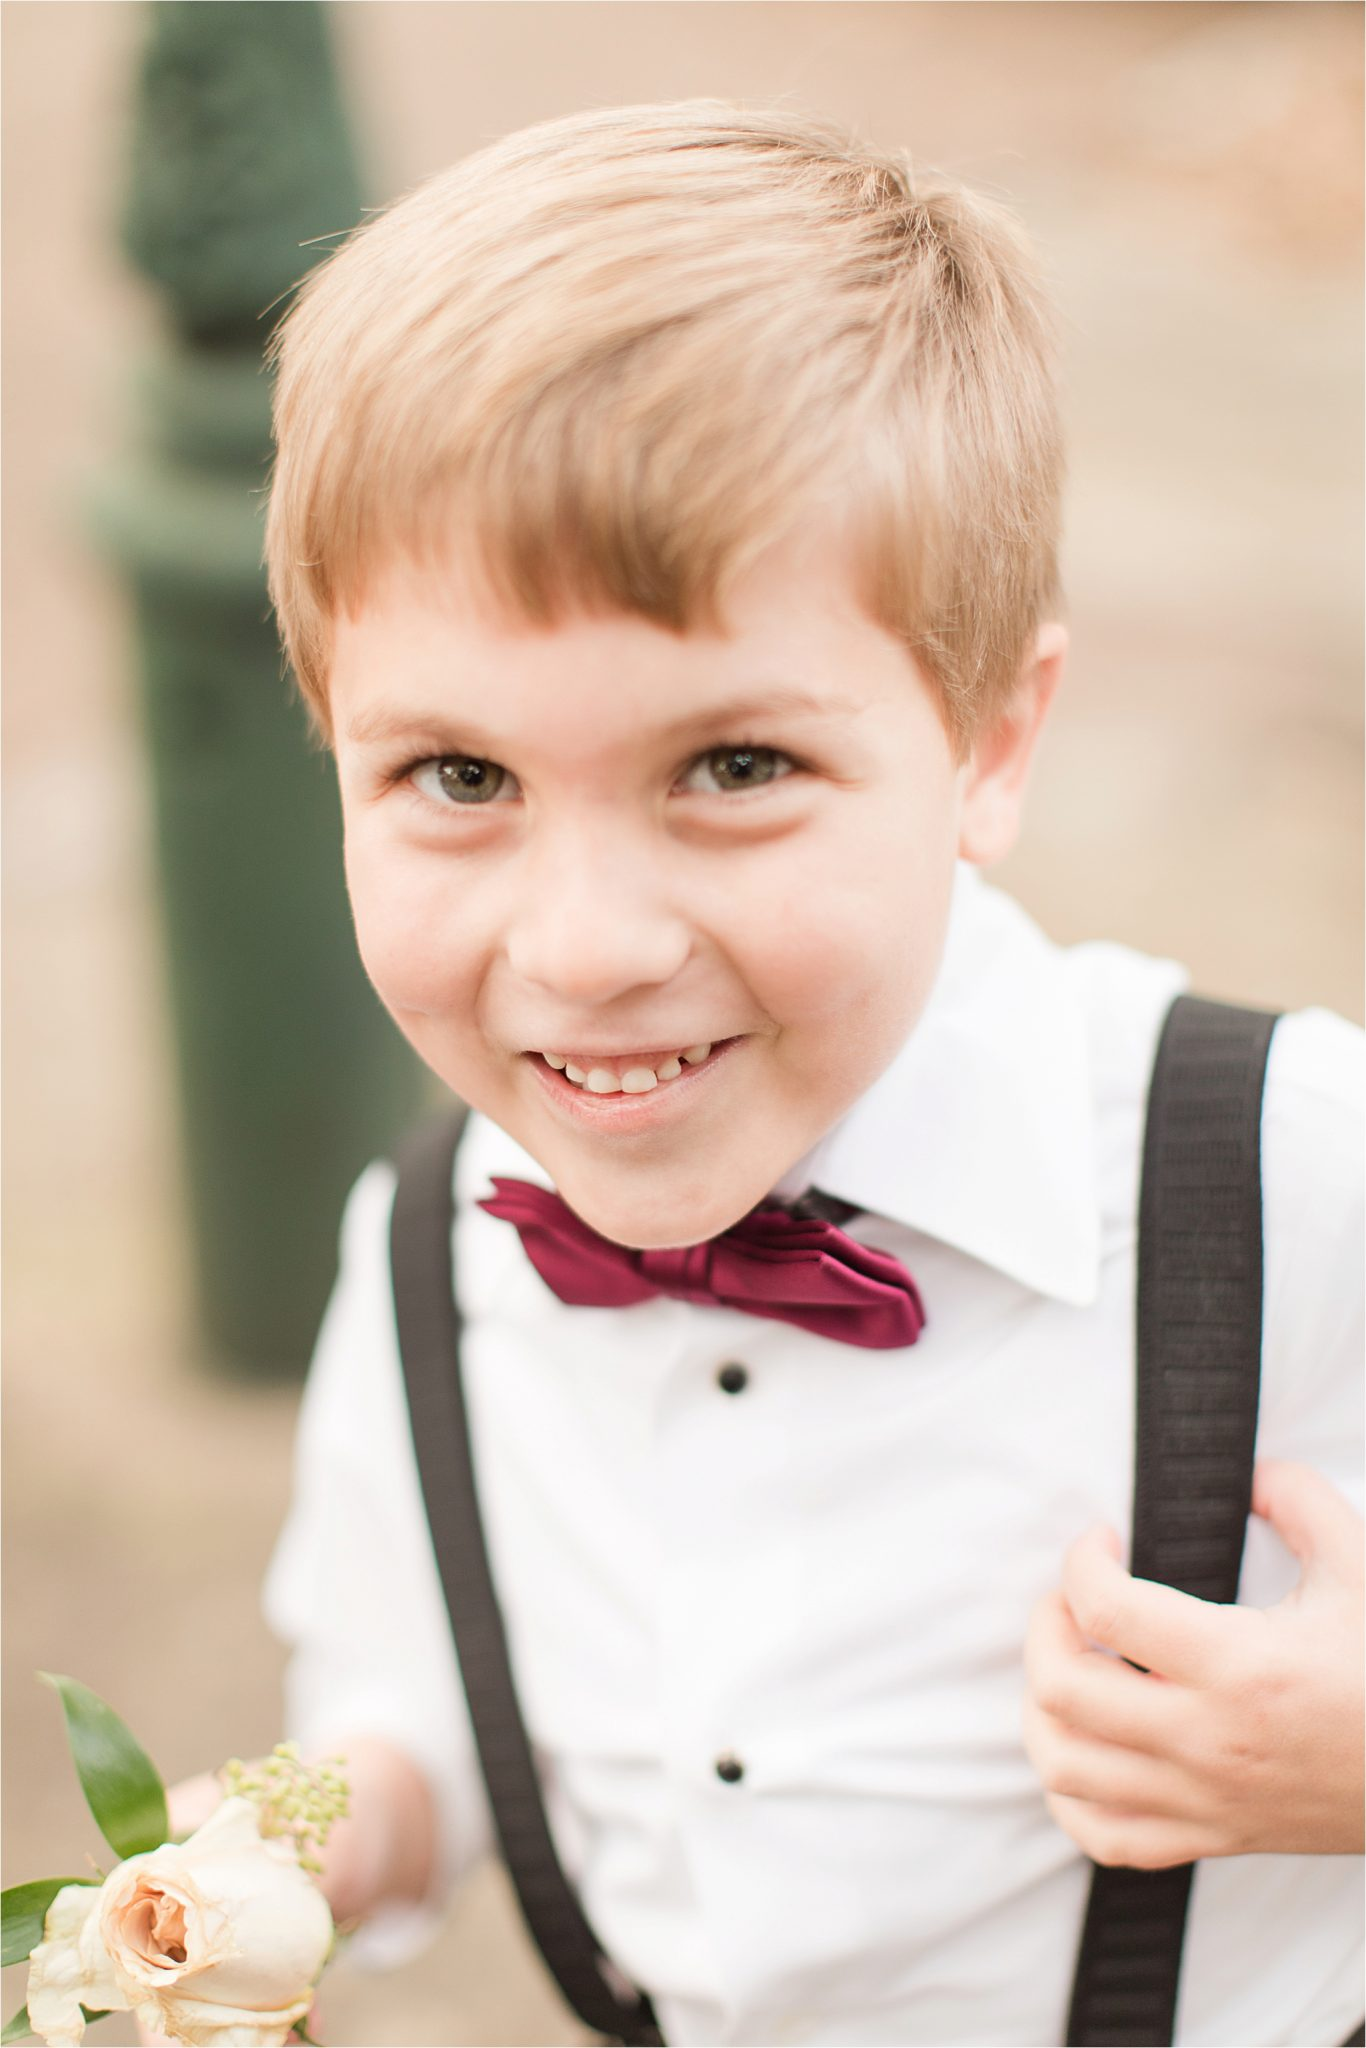 ring-bearer-maroon-bow-tie-suspenders-alabama-wedding-photographer